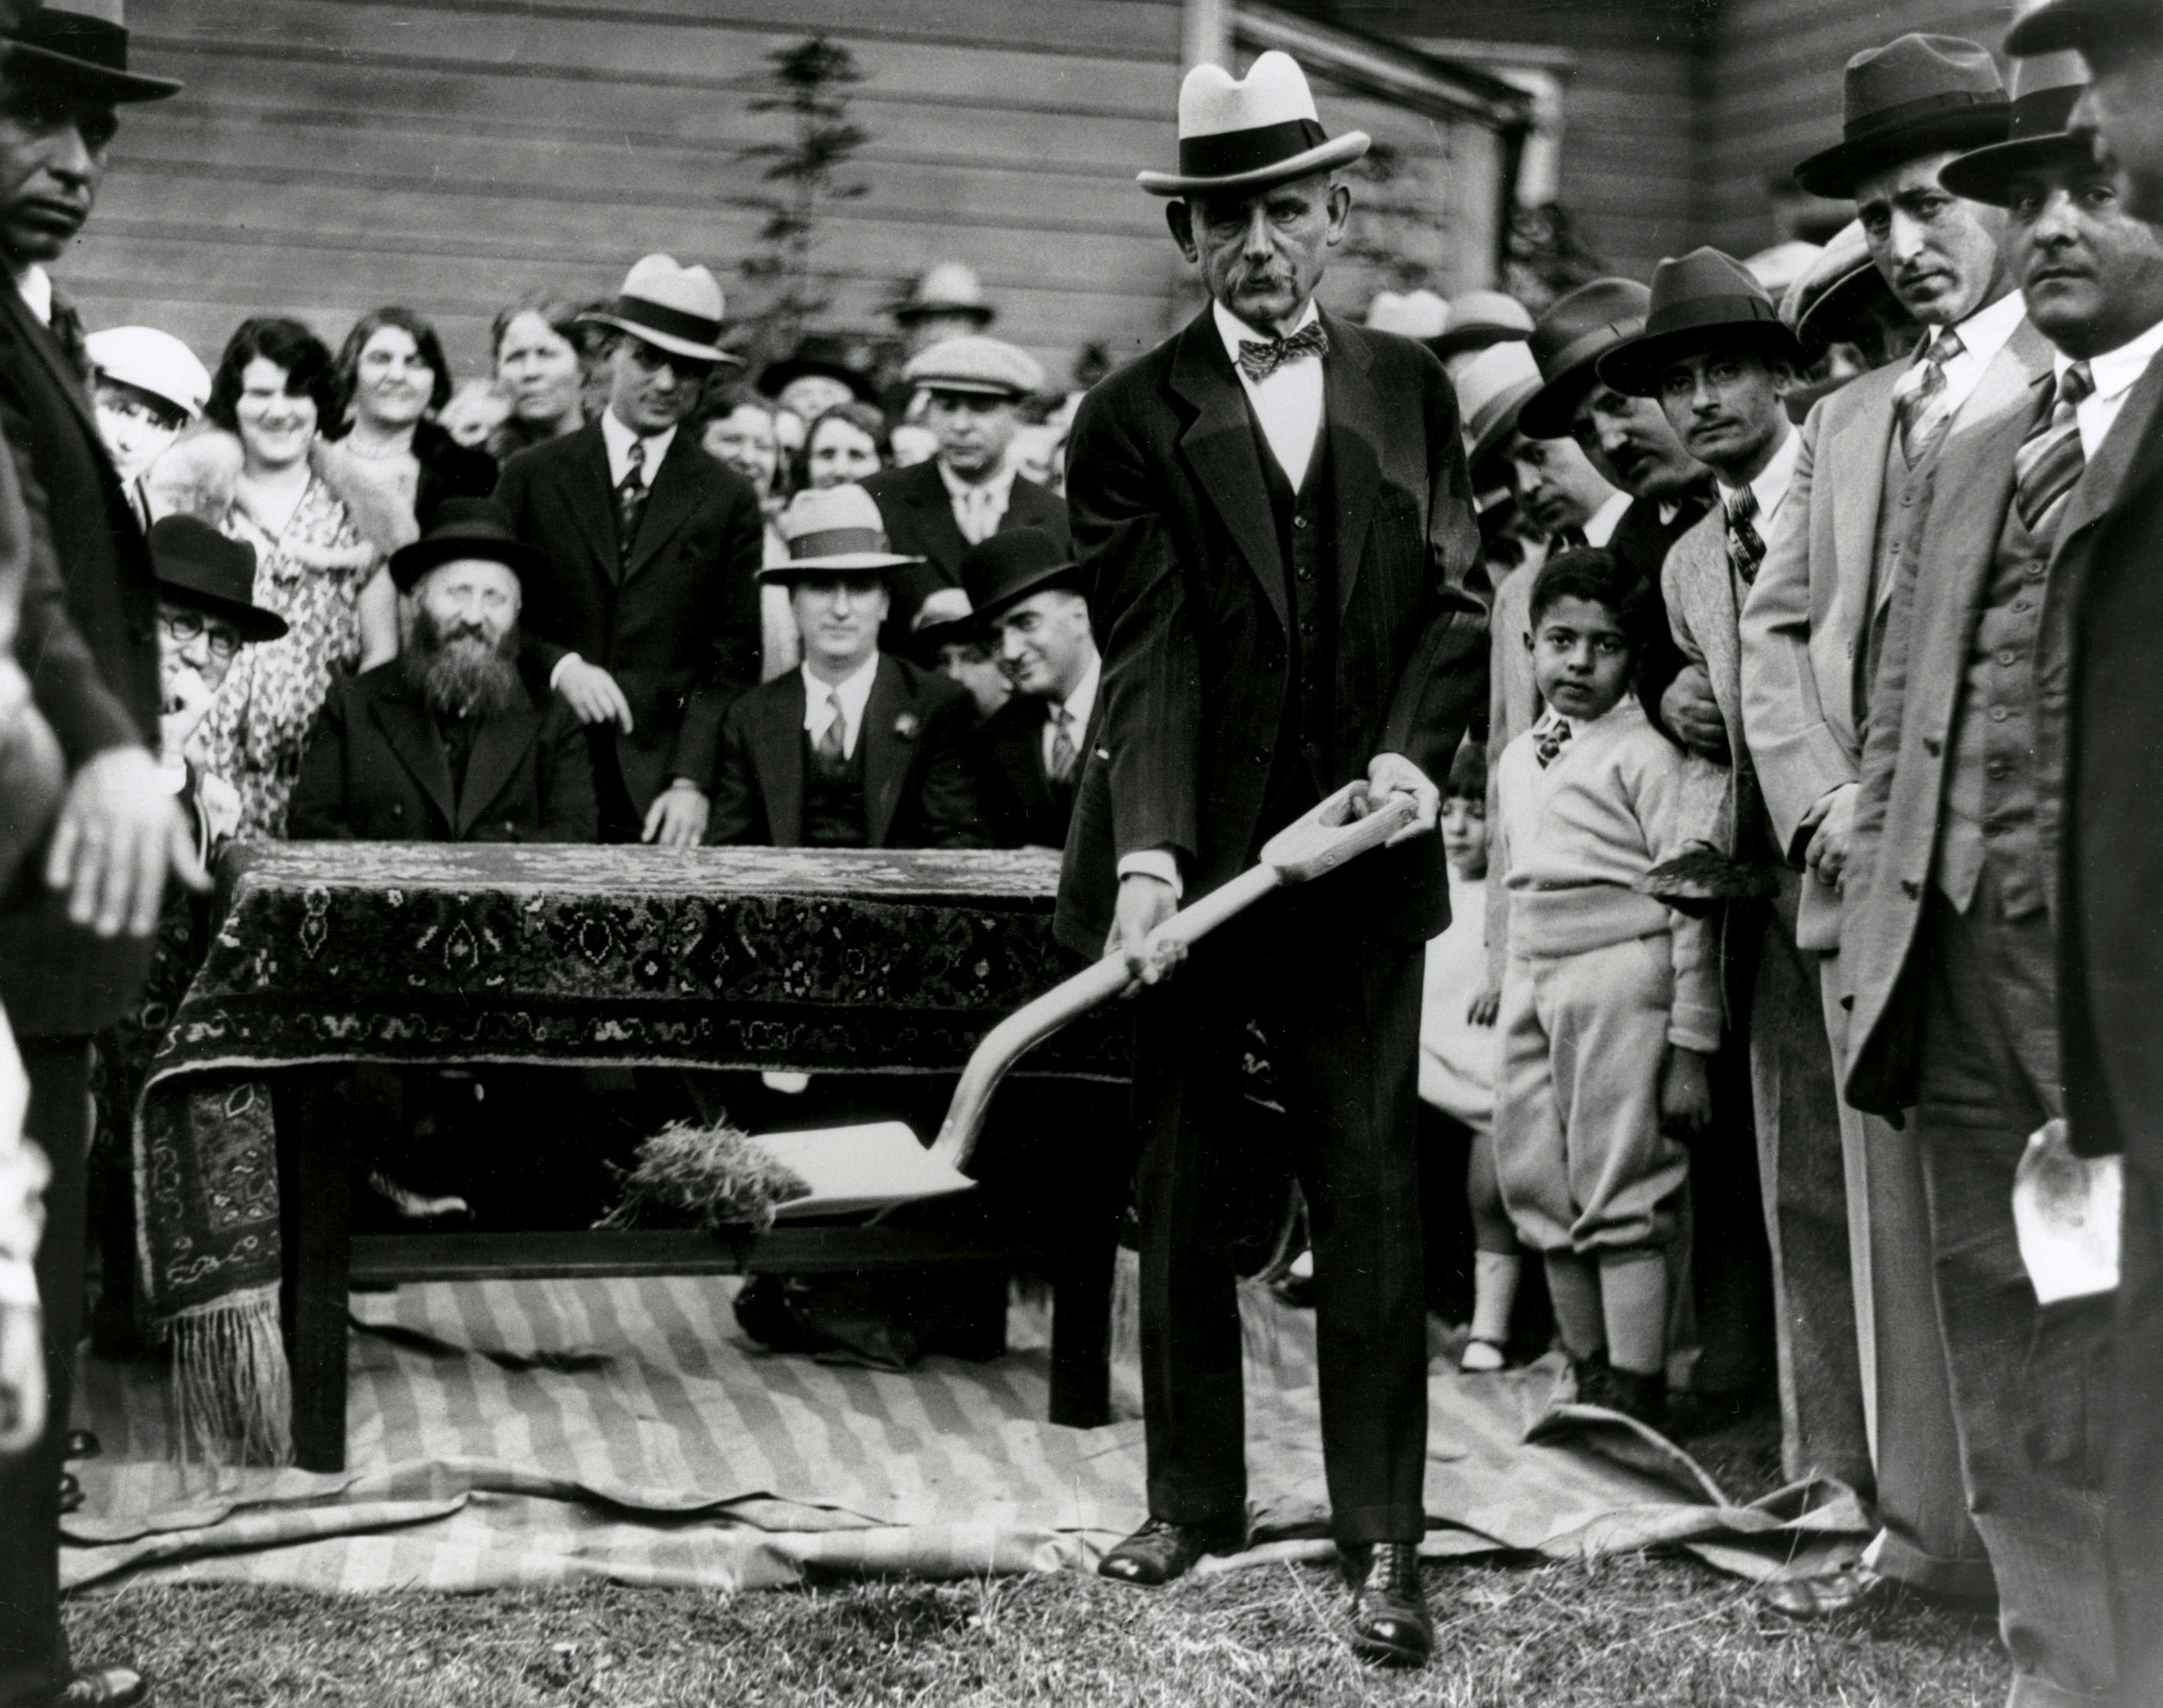 Ben Selling at the groundbreaking for Neighborhood House, c.1913